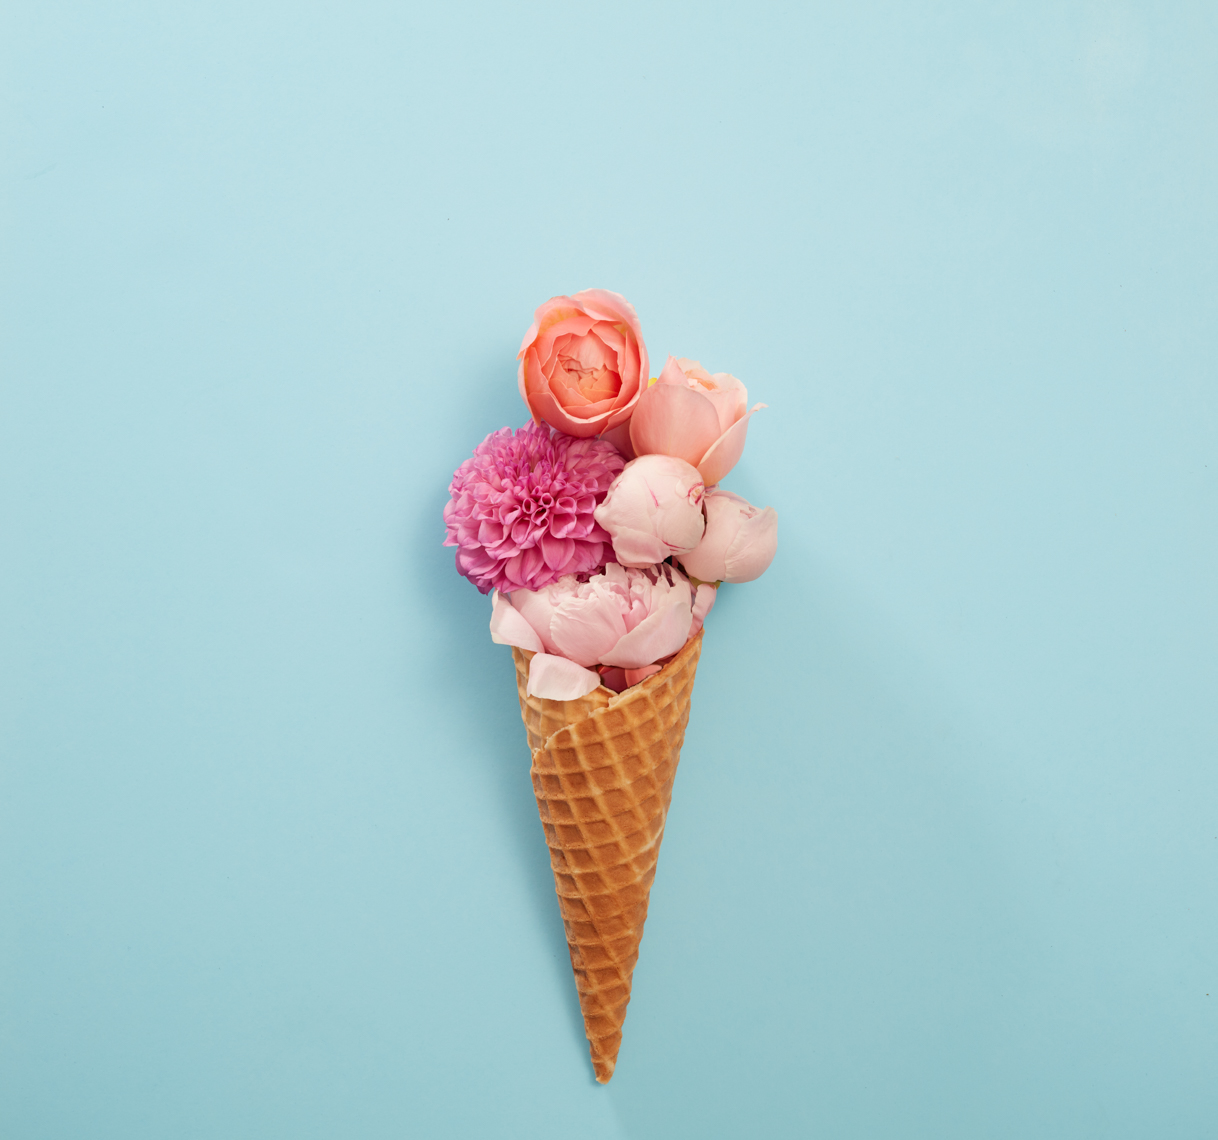 Flower ice cream cone on blue Philip Harvey Photography, San Francisco, California, still life, interiors, lifestyle and product photography